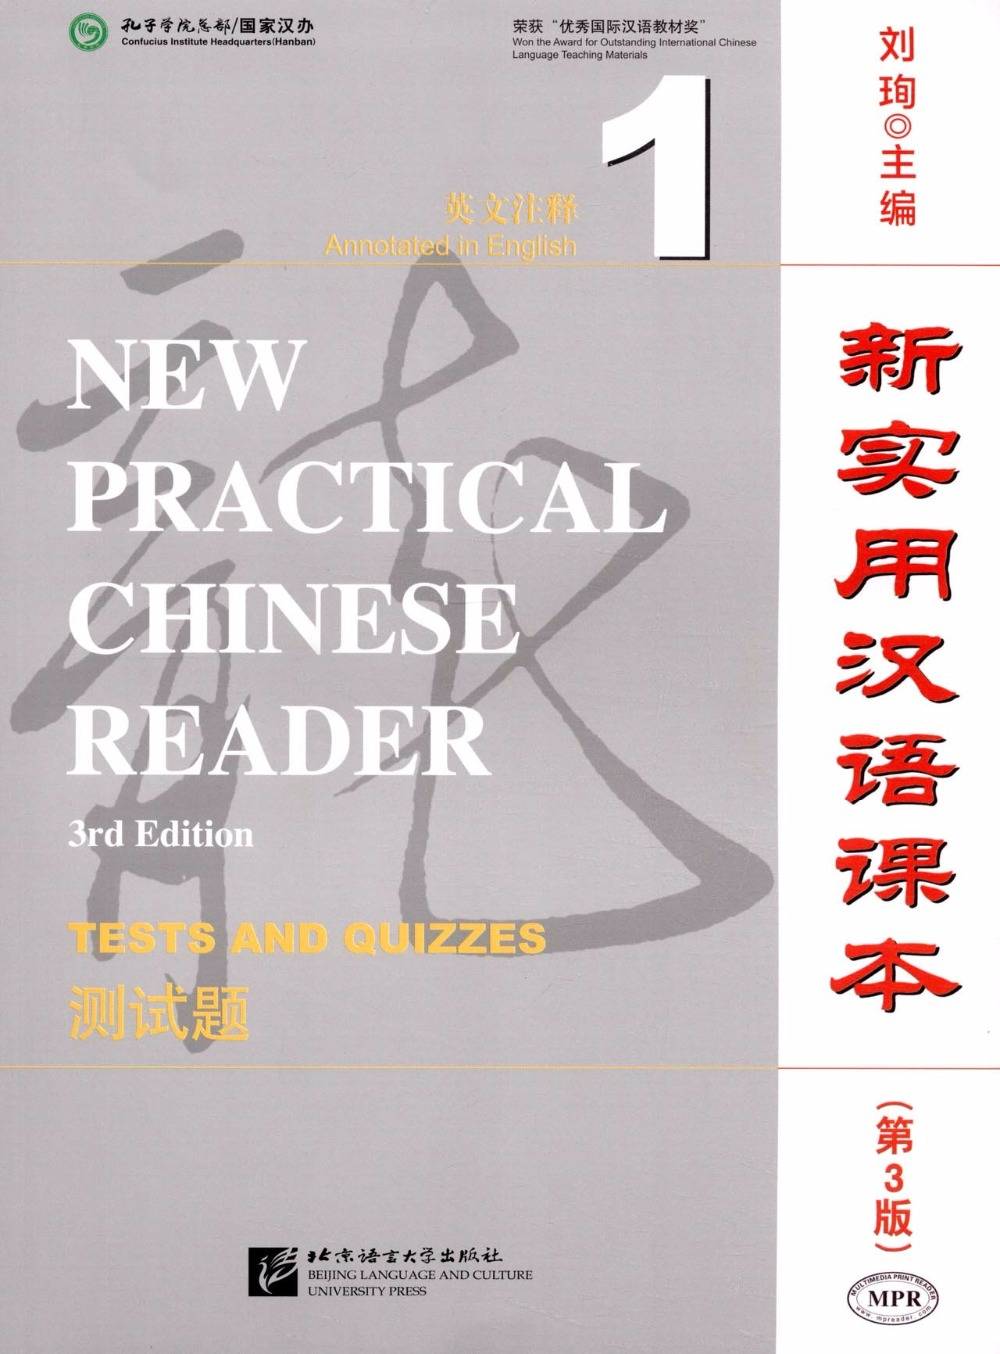 Workbooks new practical chinese reader 2 workbook : New Practical Chinese Reader 3rd Edition Tests and Quizzes with CD ...